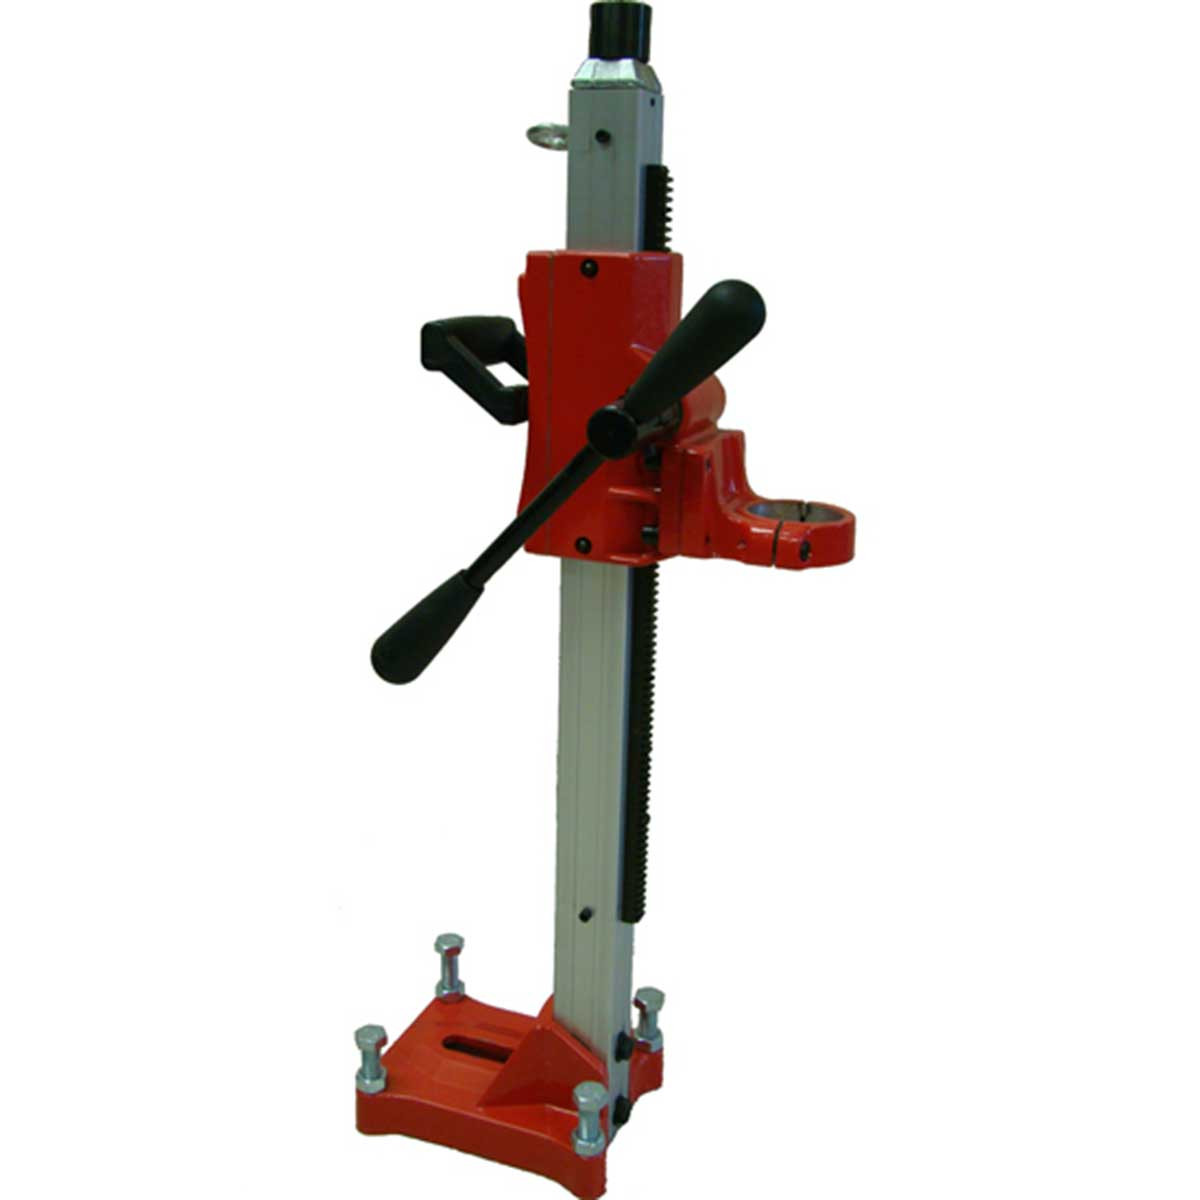 Kor-It 3 Speed Core Drill stand